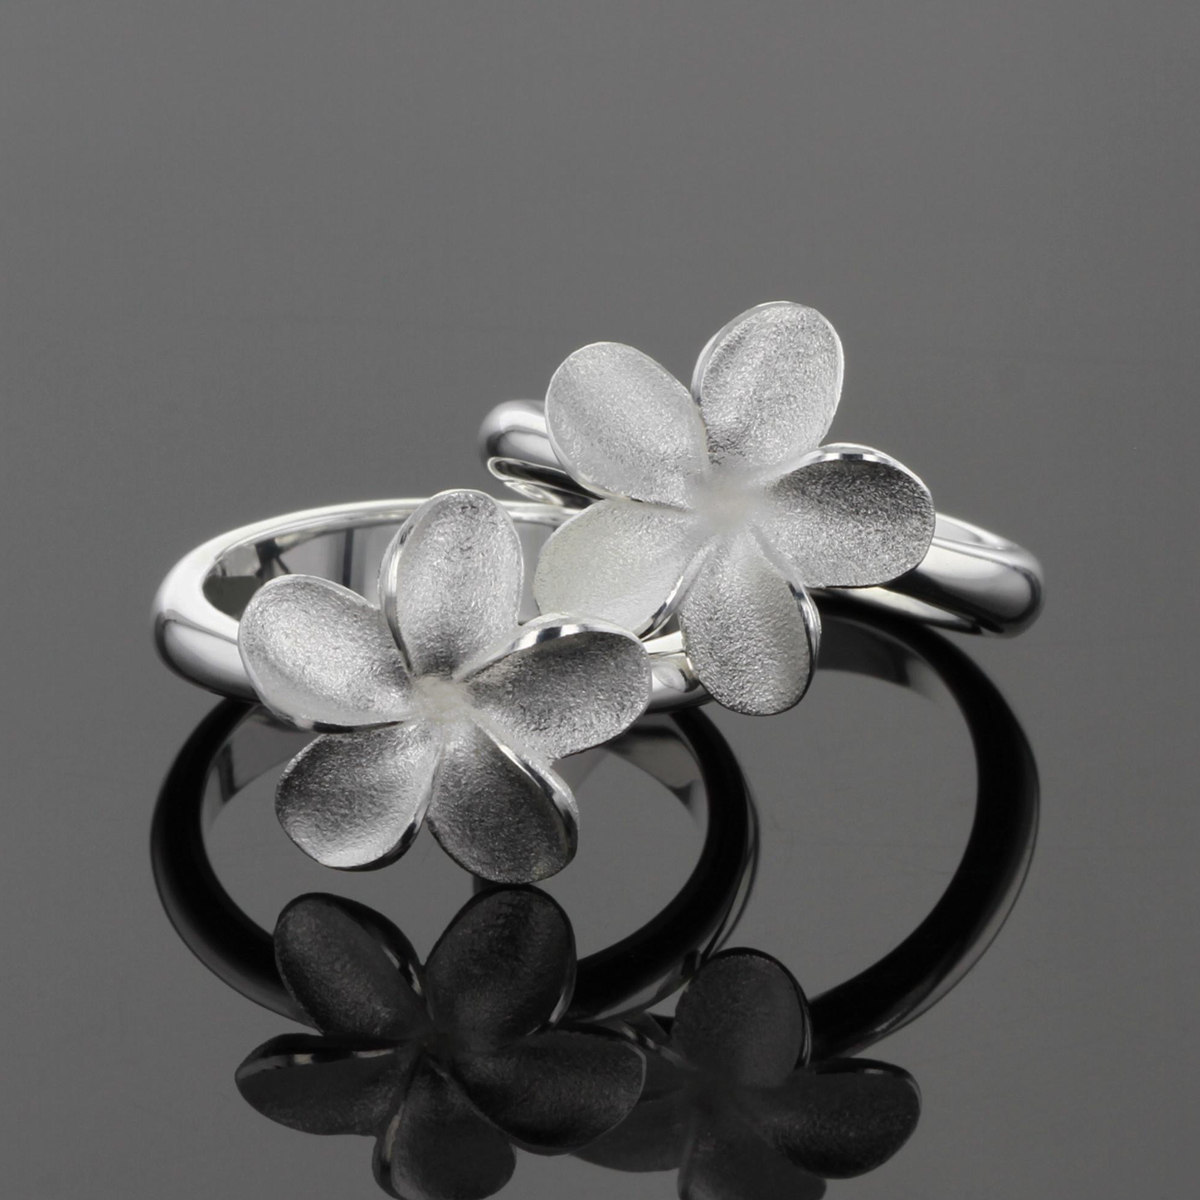 Frangipani rings from the Mauritius collection